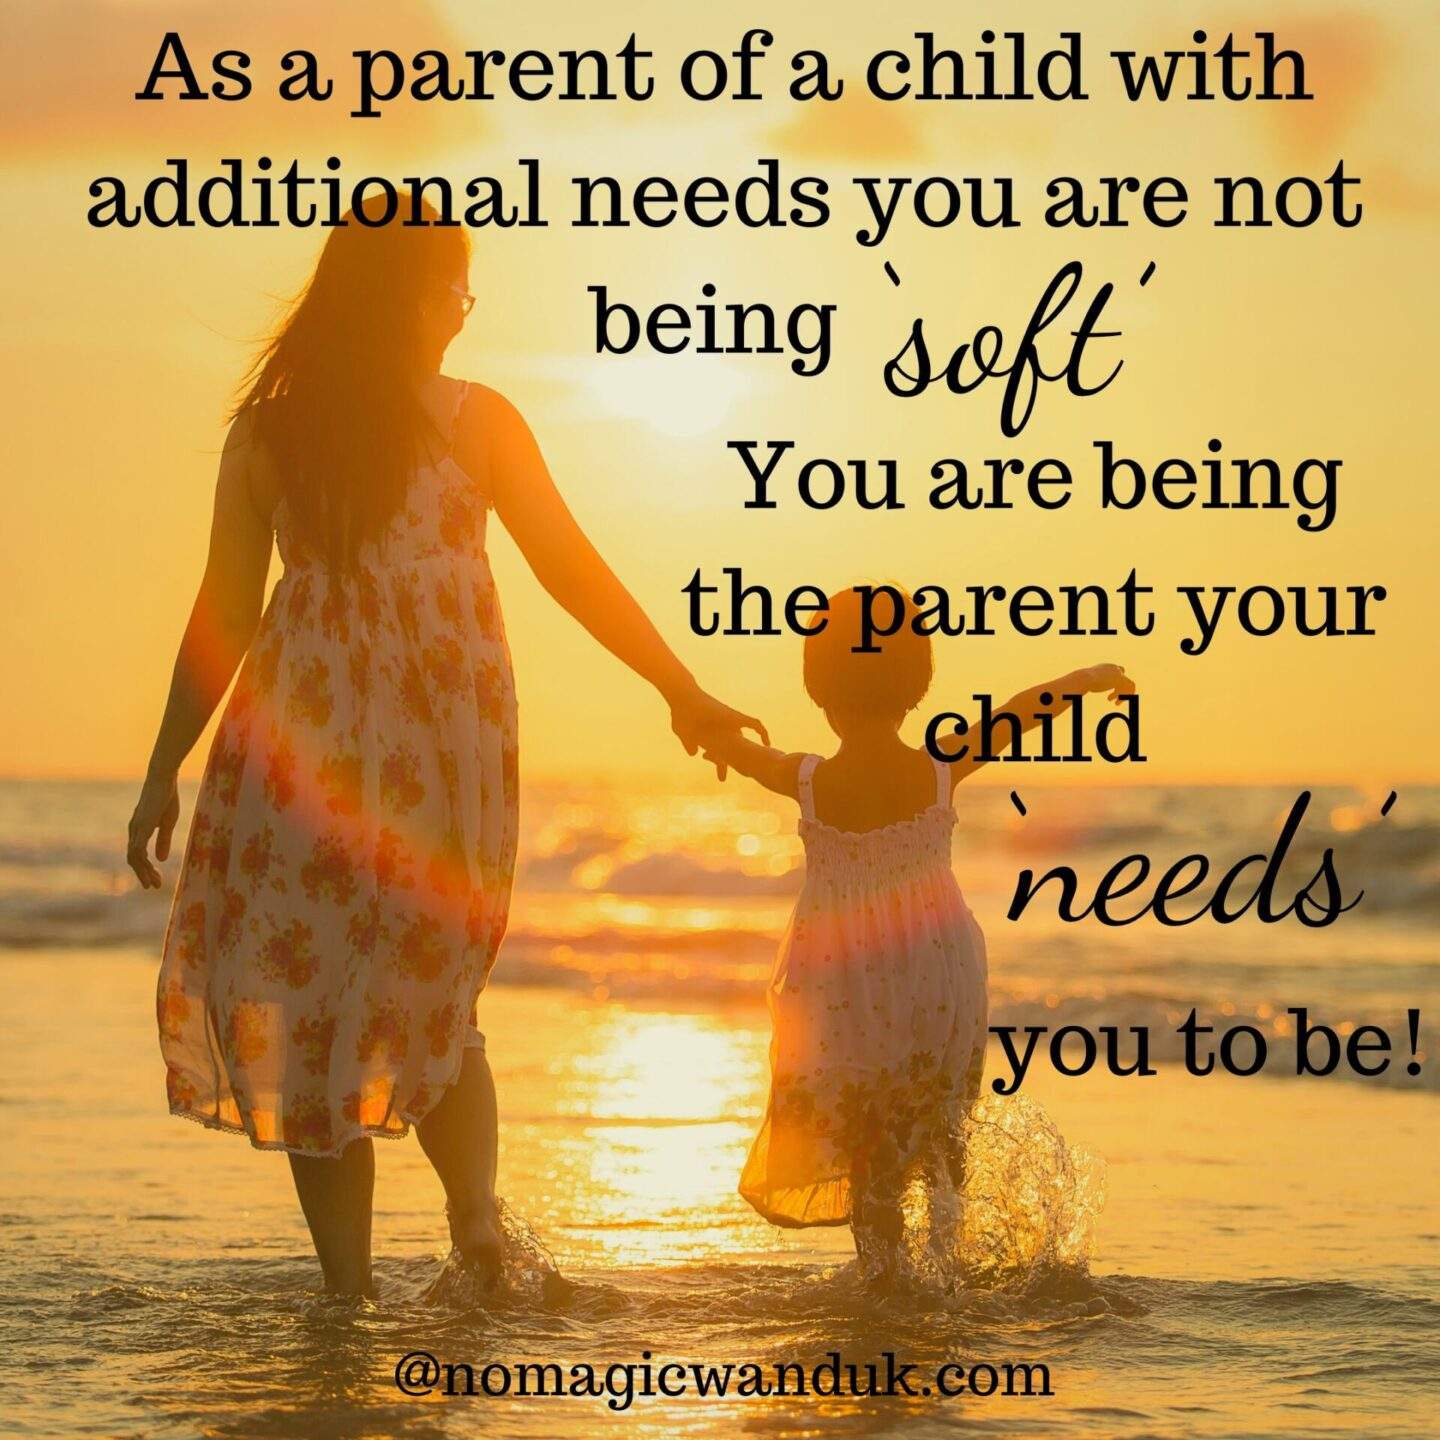 Parent/Carer Truths (Click to see more)